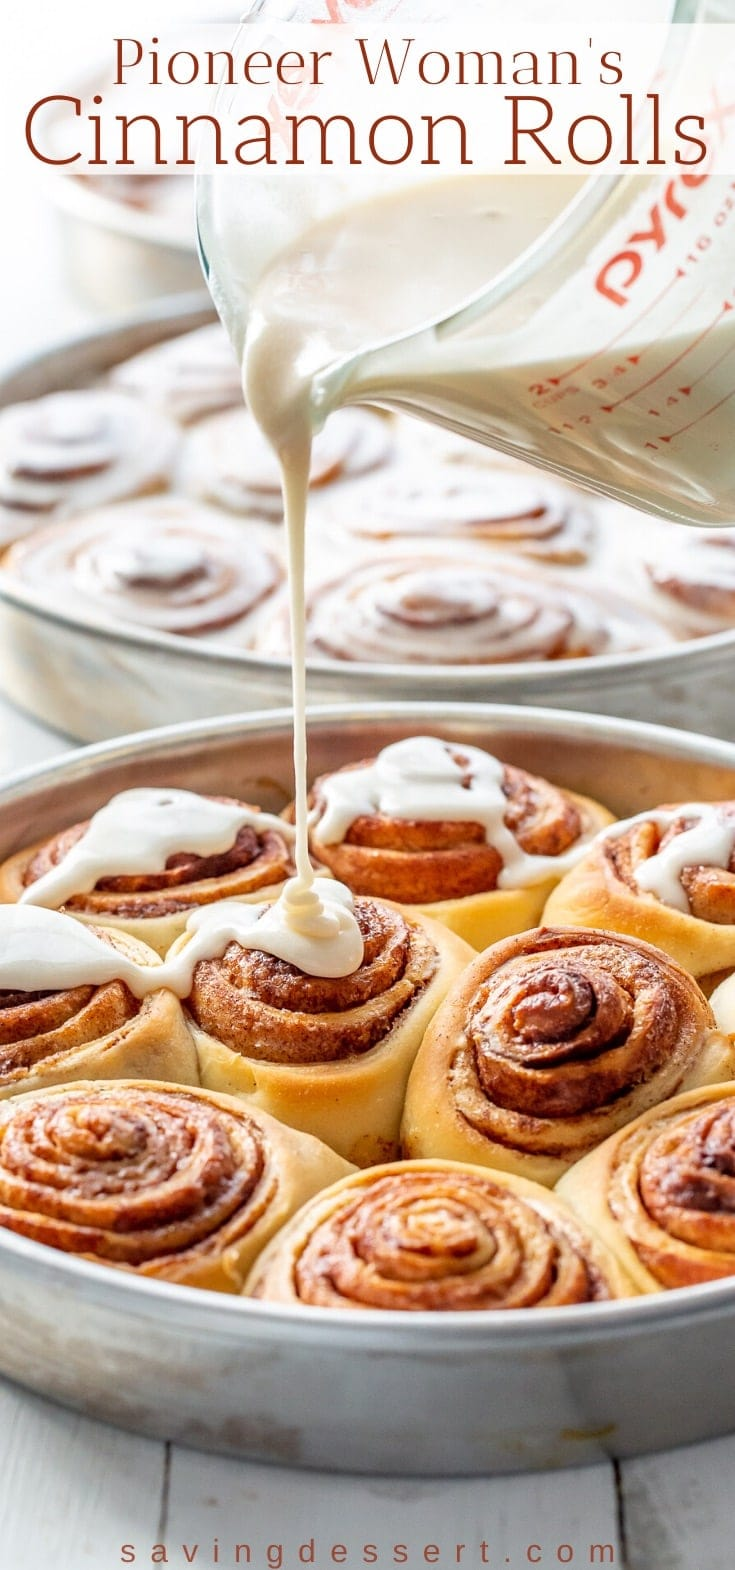 A pan of cinnamon rolls being drizzled with maple frosting